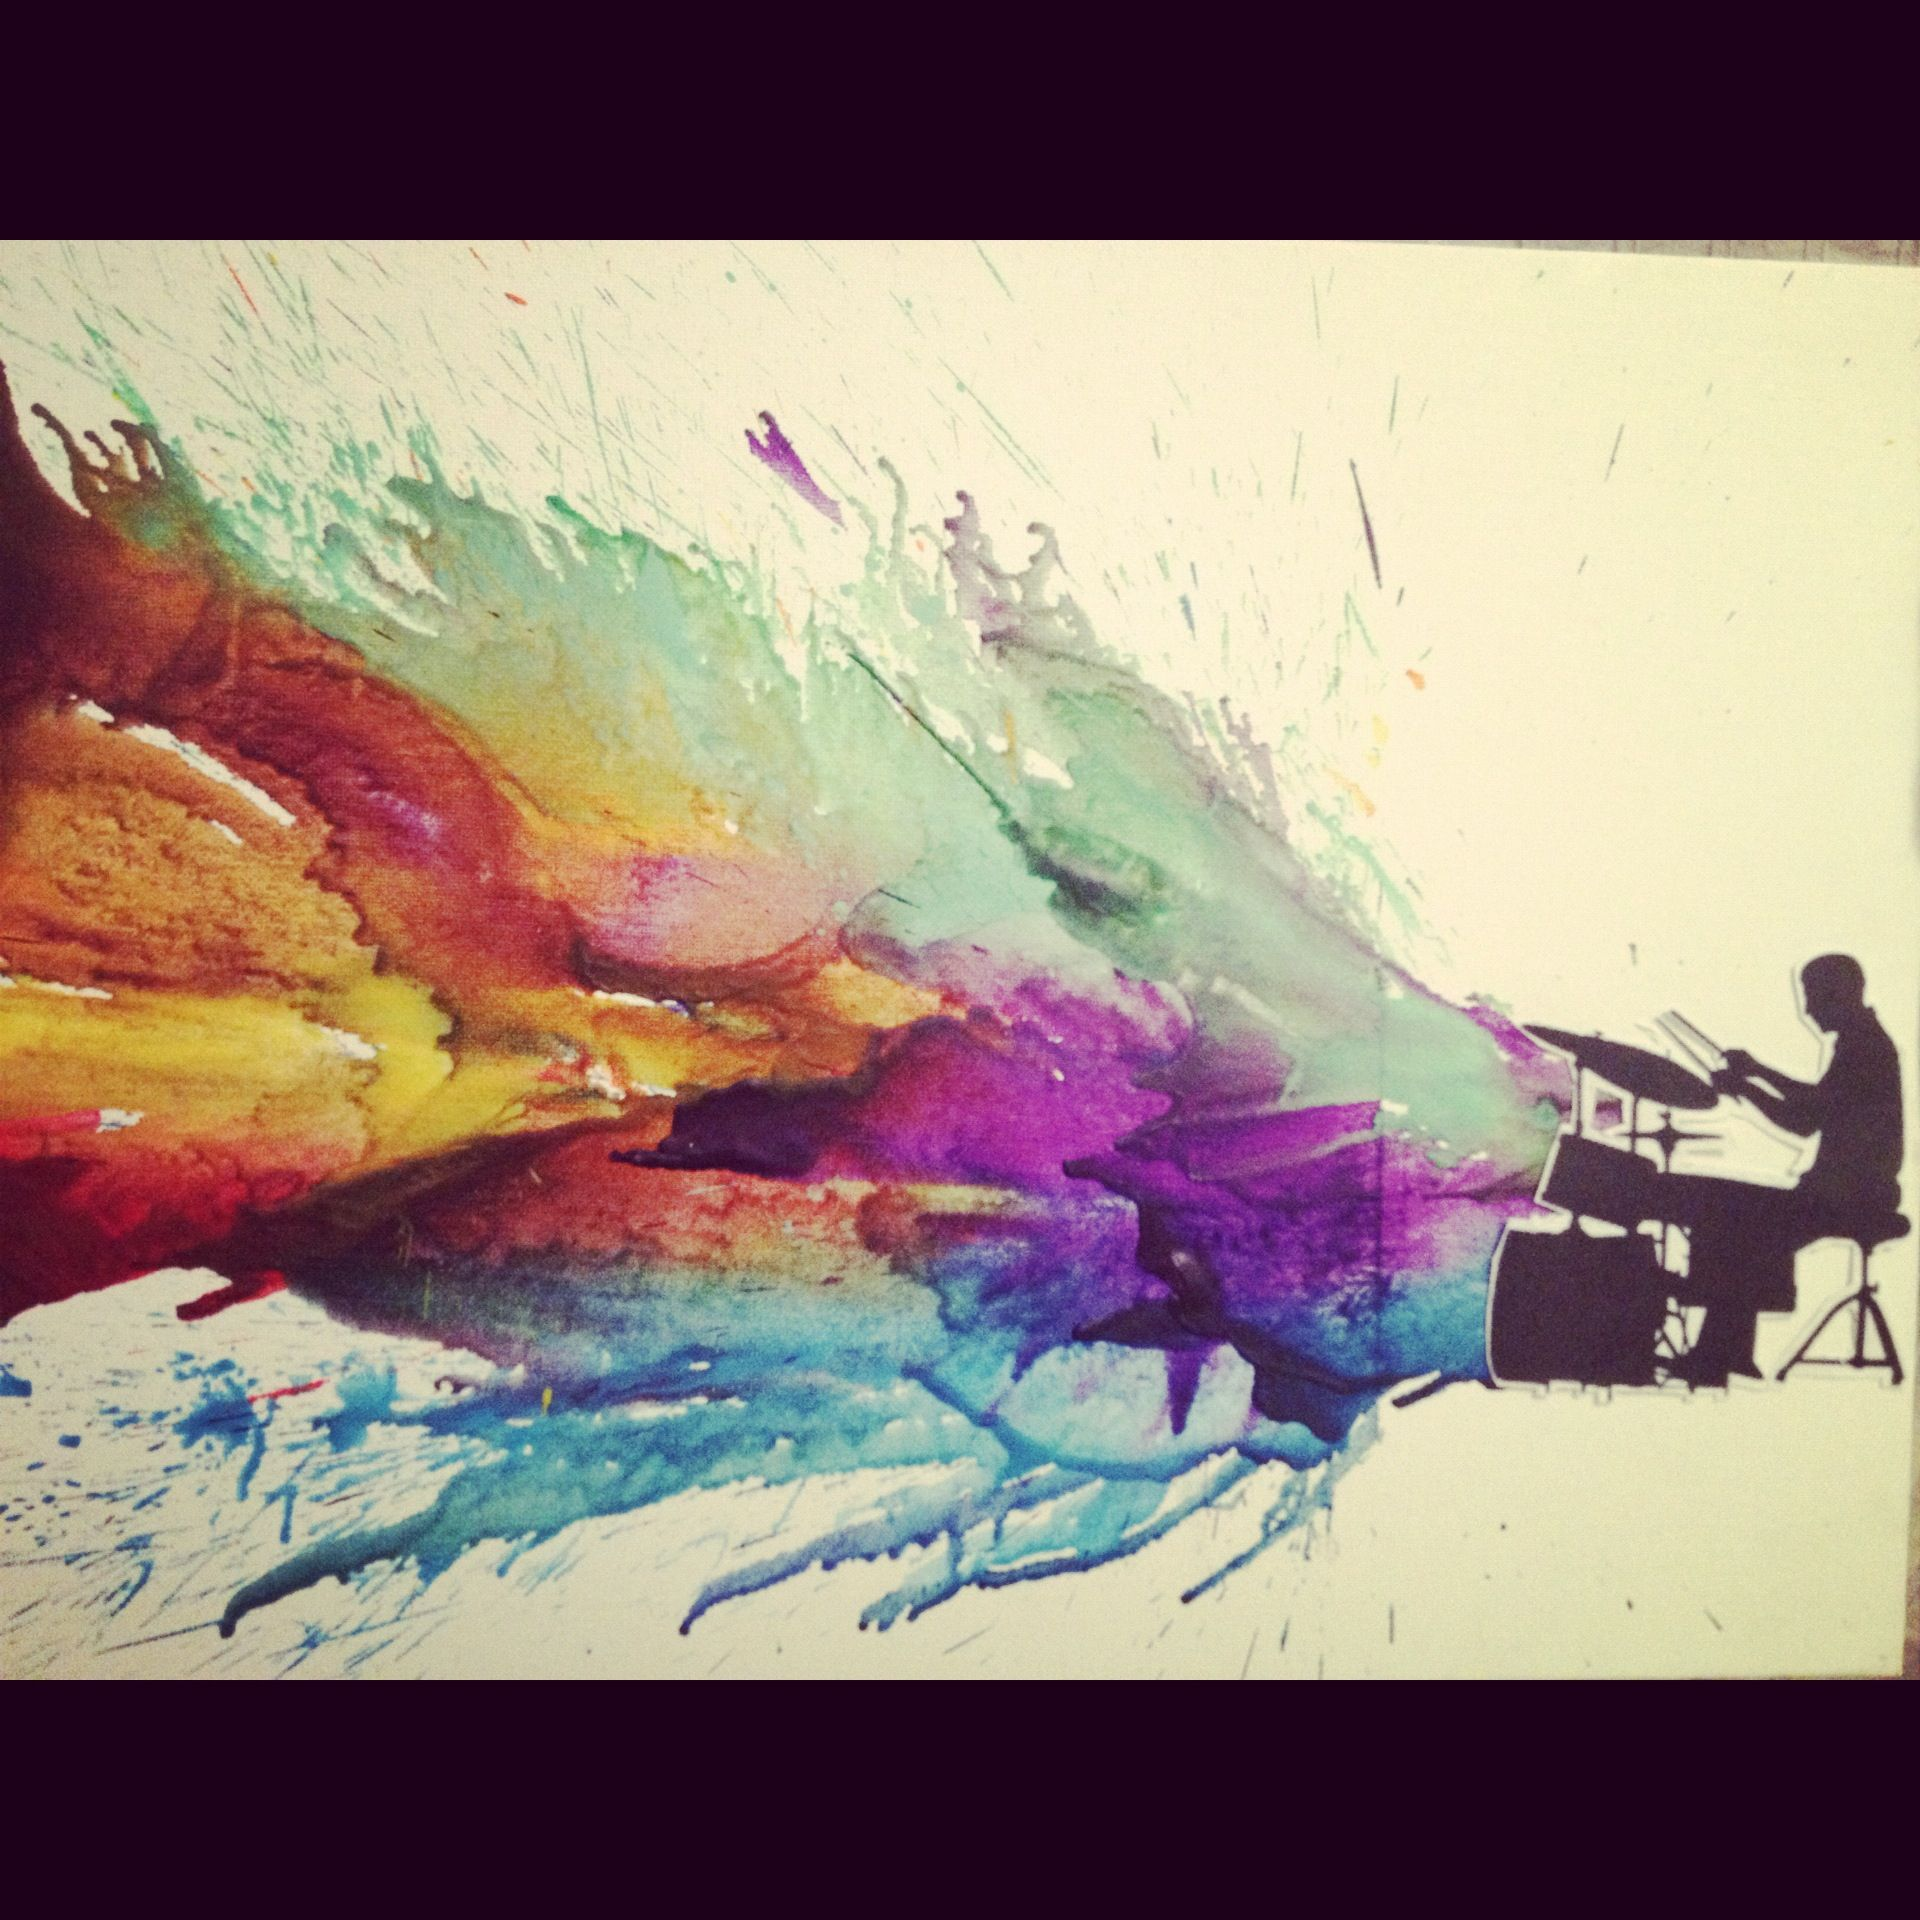 Crayon Art Wax Crayon Art Crayon Art Melted Crayon Art